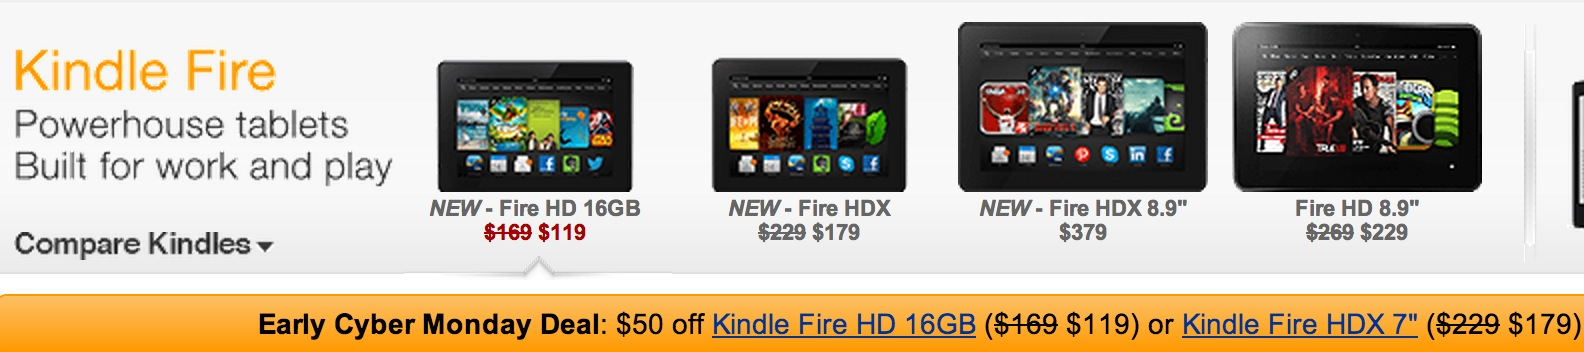 Kindle-fire-cyber-monday-50-off